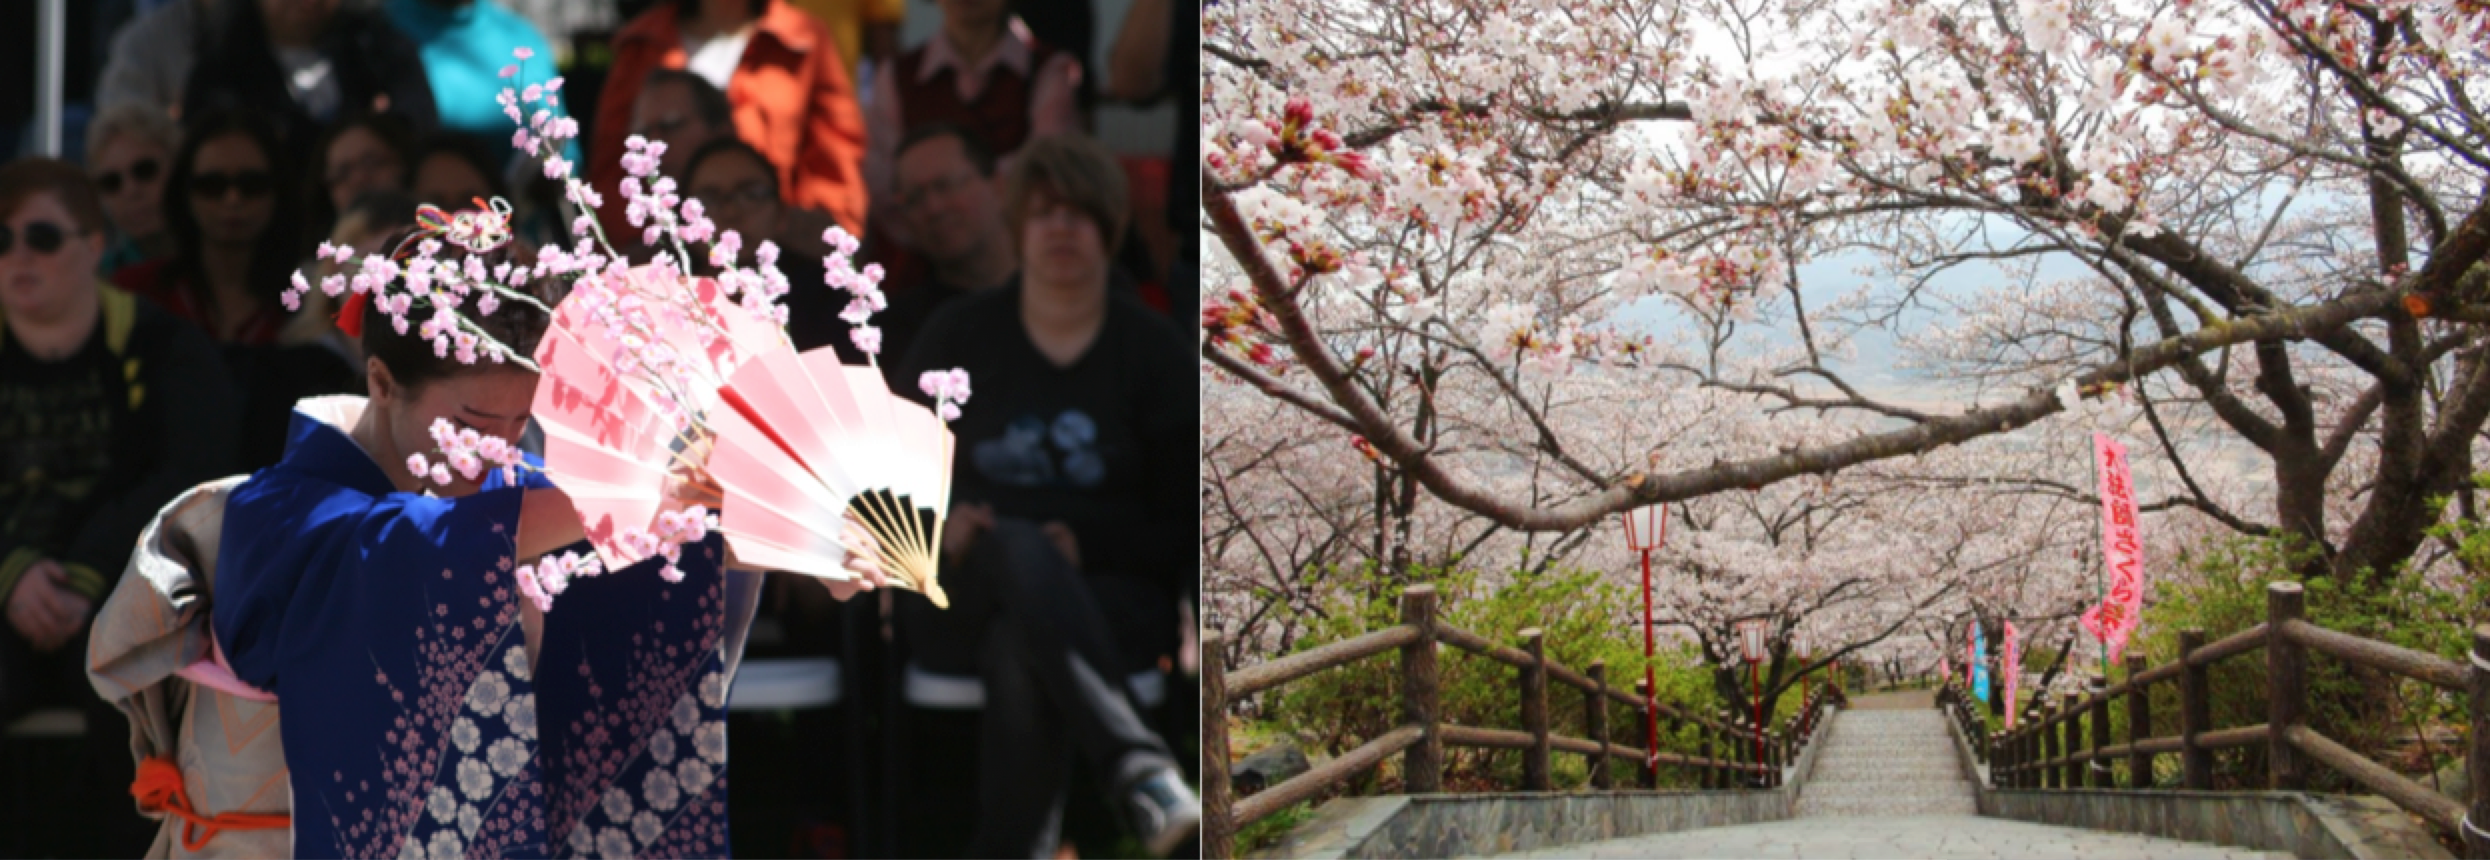 Japanese Cherry Blossom Festival at the Bowers Museum